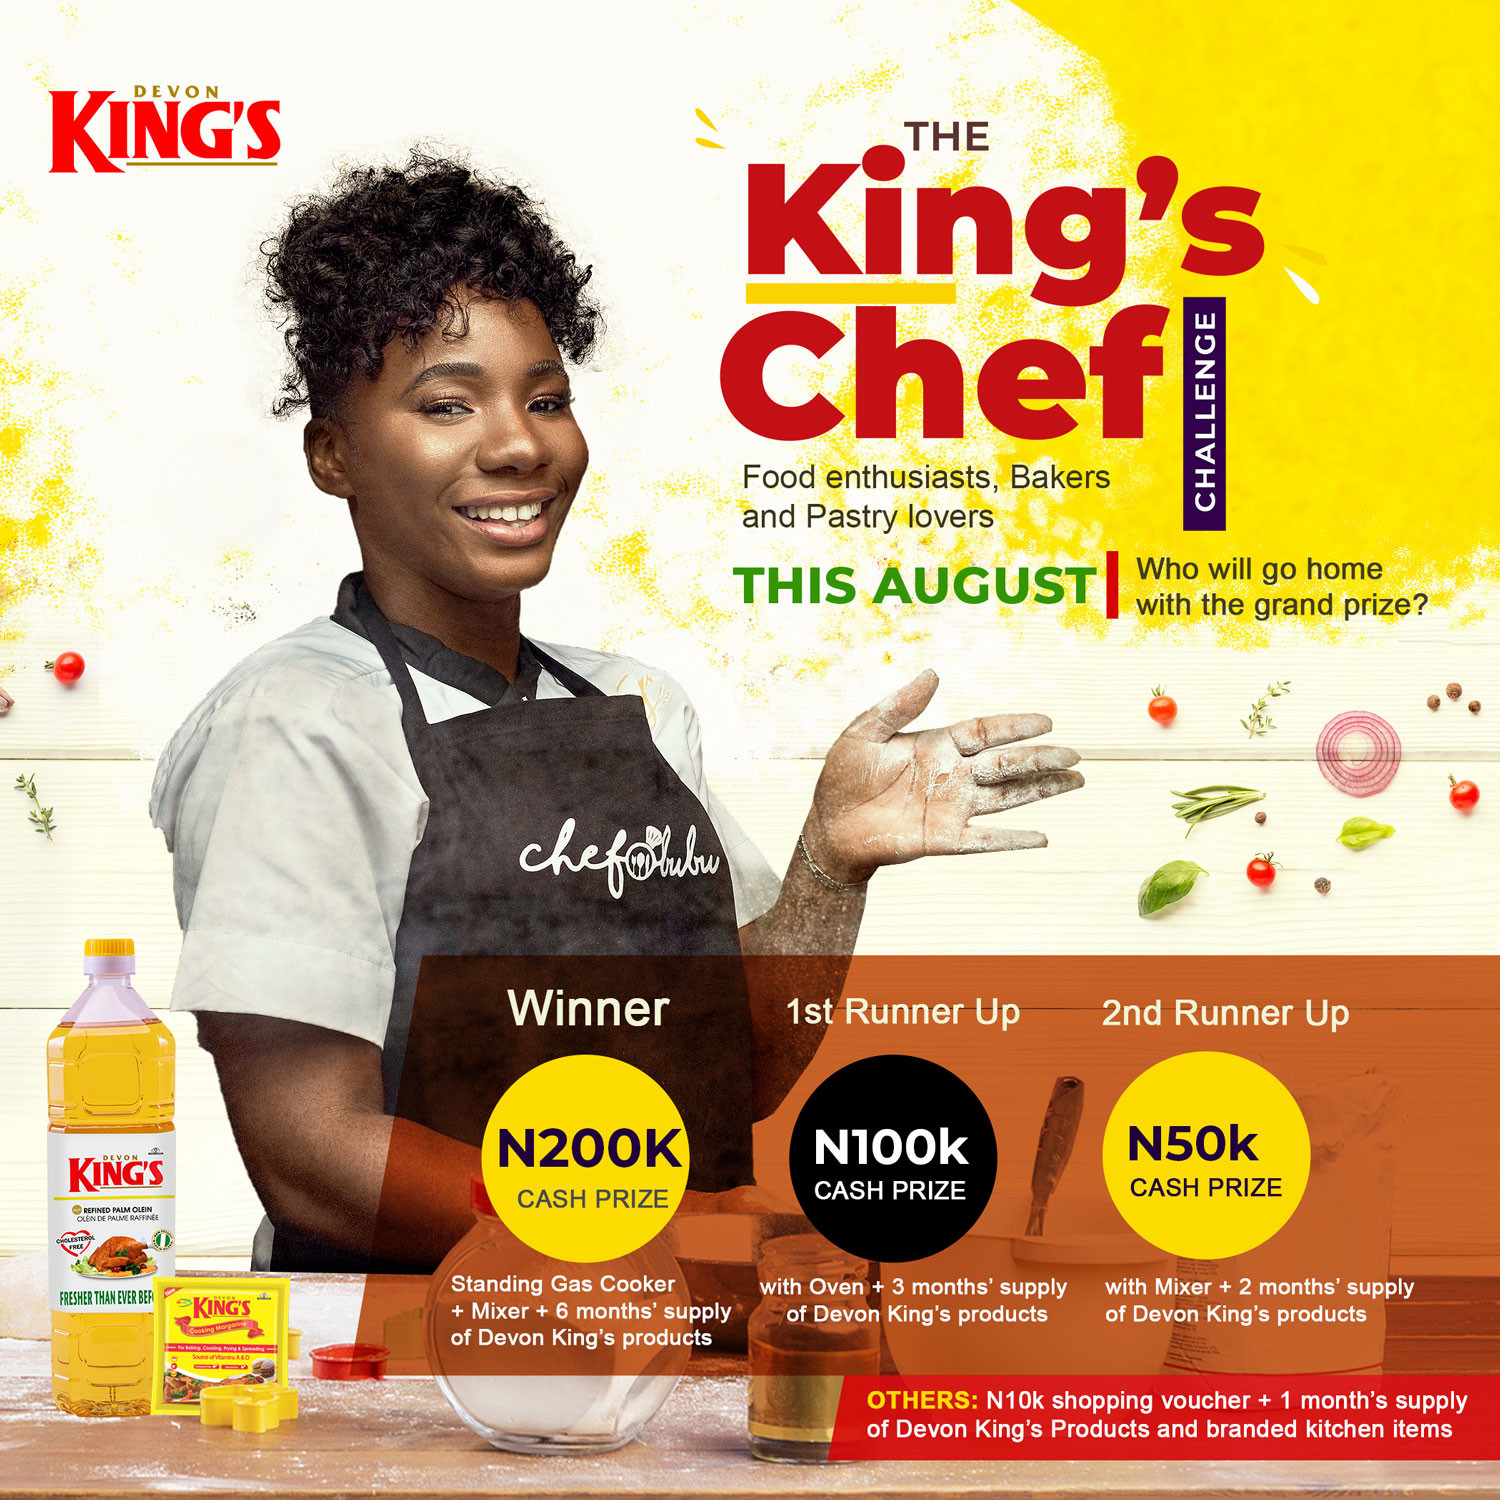 Up to 1 million naira worth prizes up for grabs in the Devon Kings #TheKingsChef challenge!